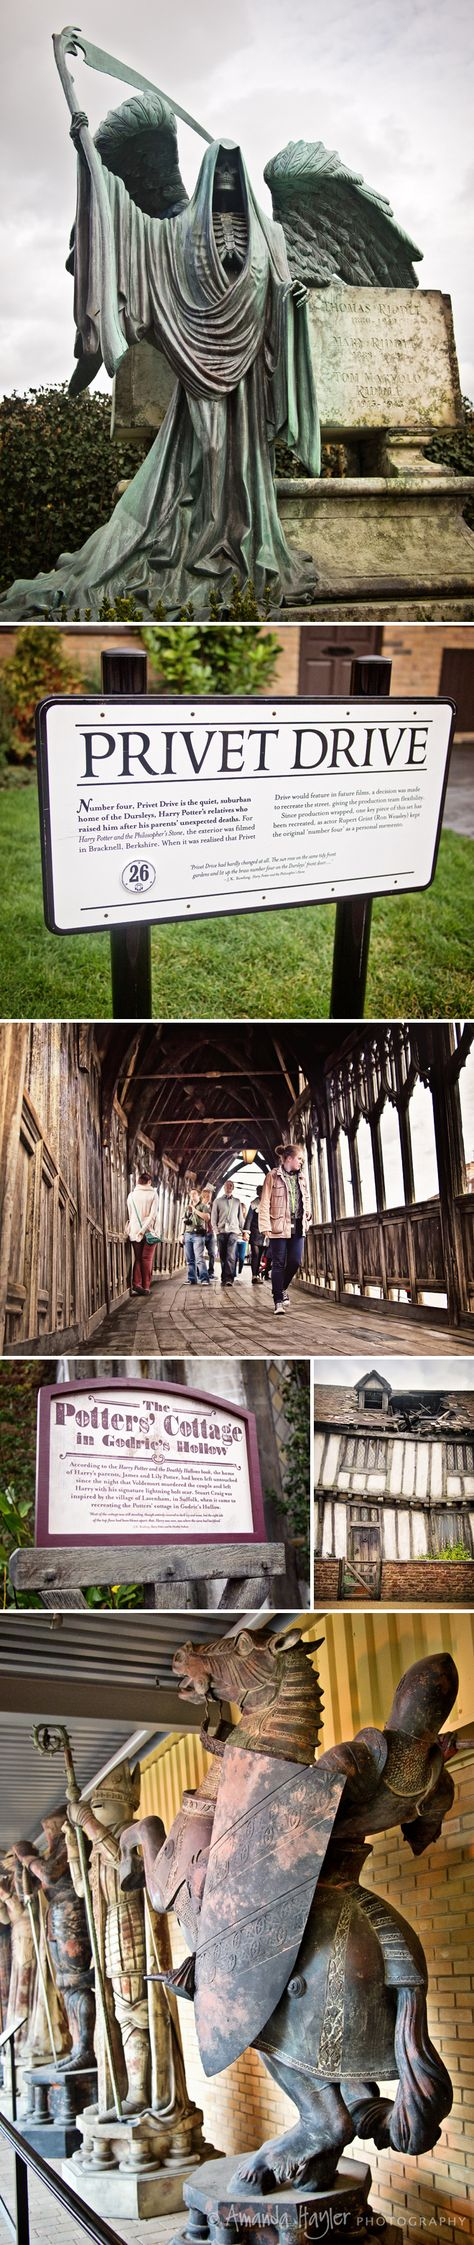 HP sets and locations you can actually visit!!!!-----most glorious adventure you will have in London---- seriously on my bucket list!!!